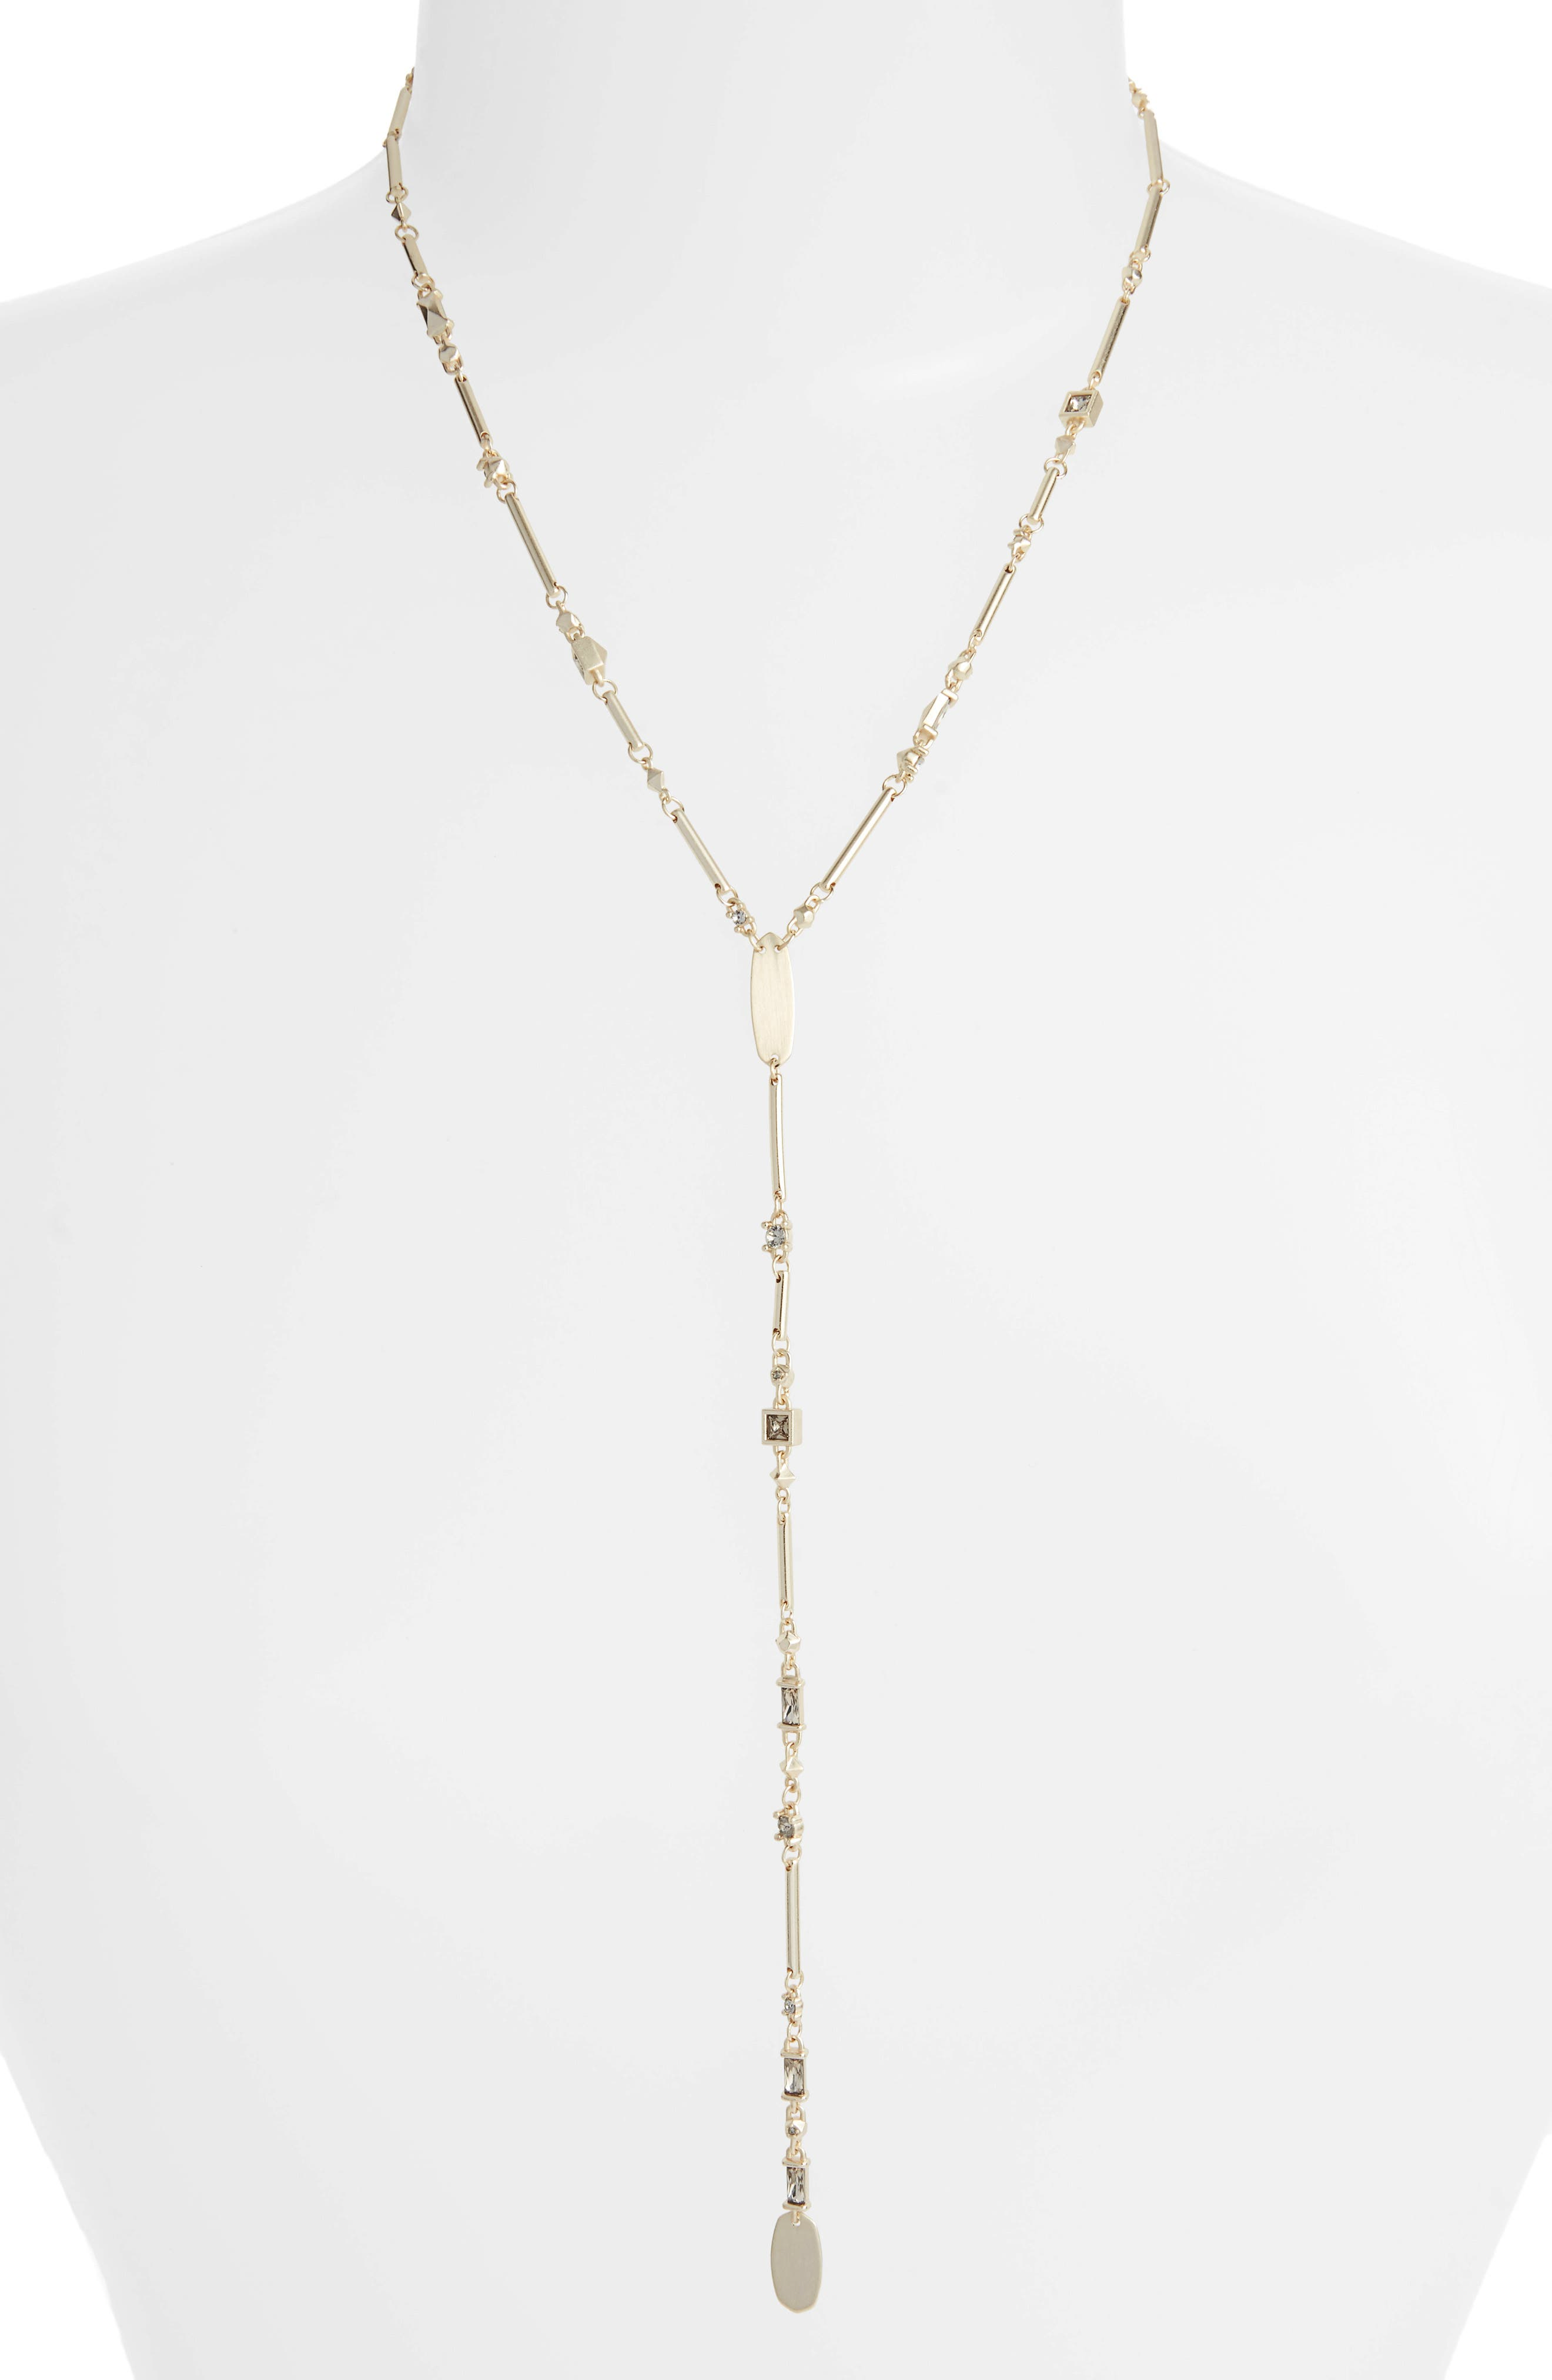 KENDRA SCOTT Crowley Lariat Necklace, 18 in Smoky Mix/ Gold